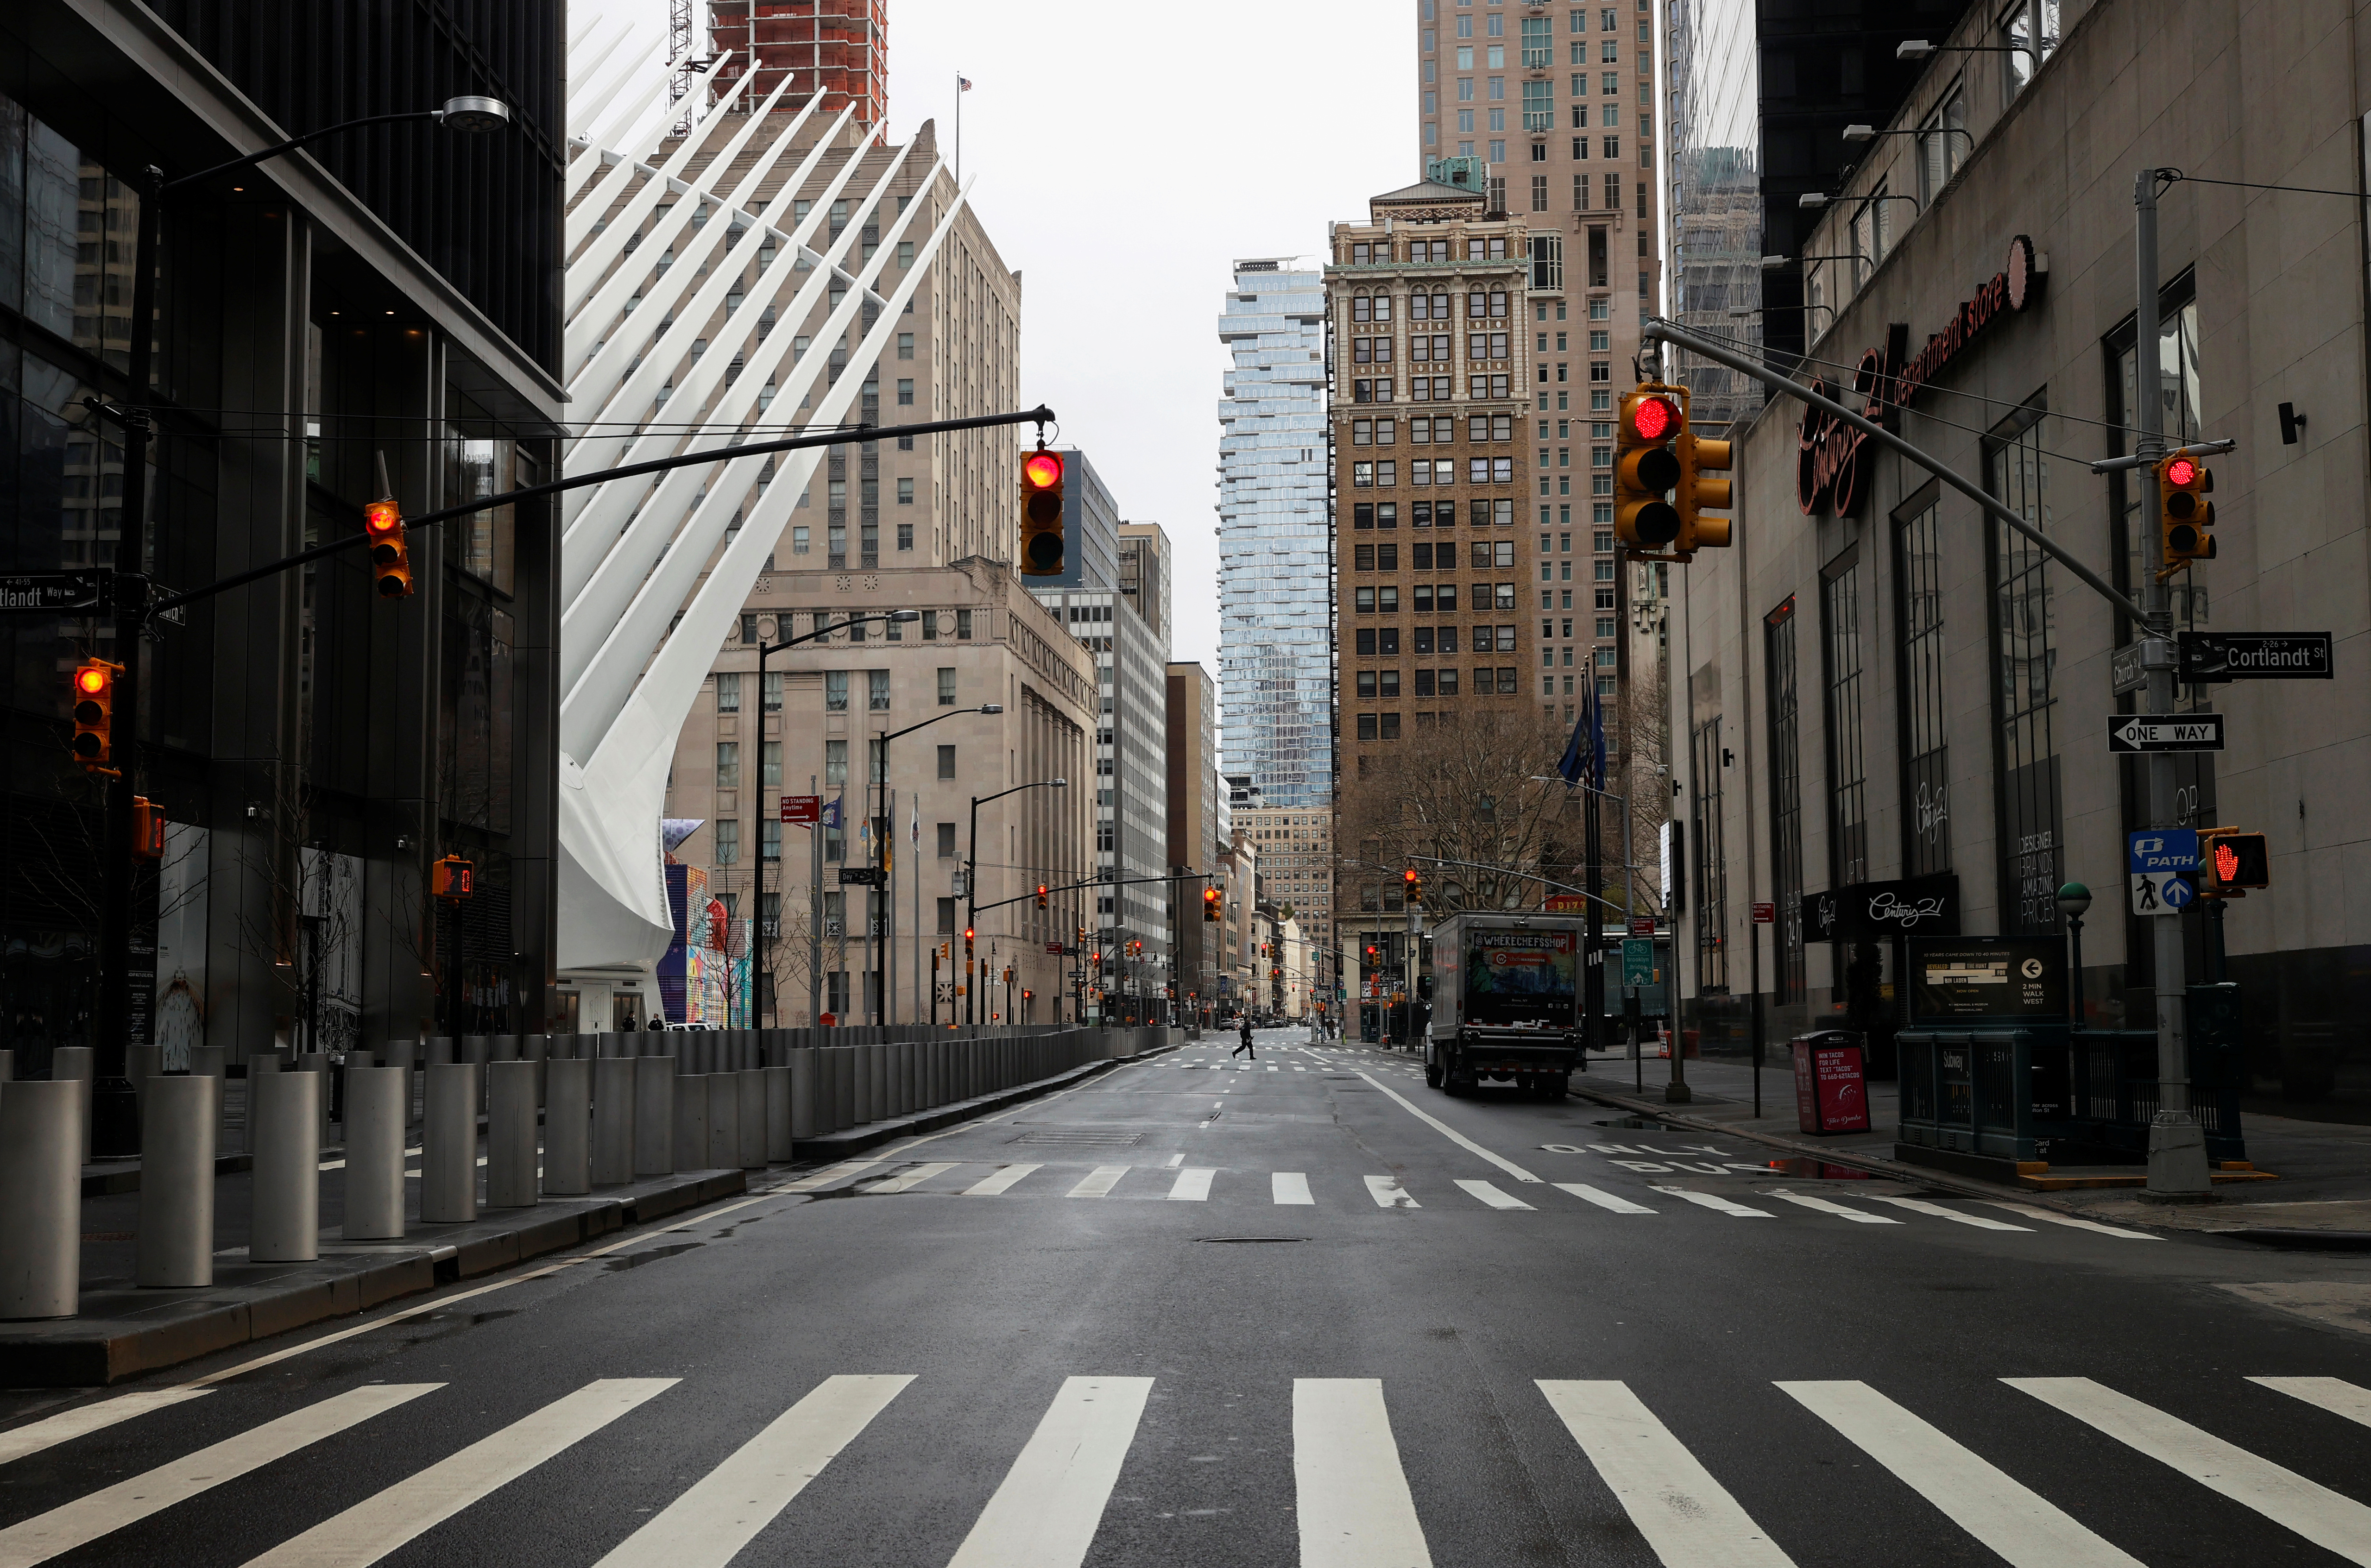 A nearly deserted Church Street in the financial district in lower Manhattan is seen during the outbreak of the coronavirus disease (COVID-19) in New York City, New York, U.S., April 3, 2020. REUTERS/Mike Segar